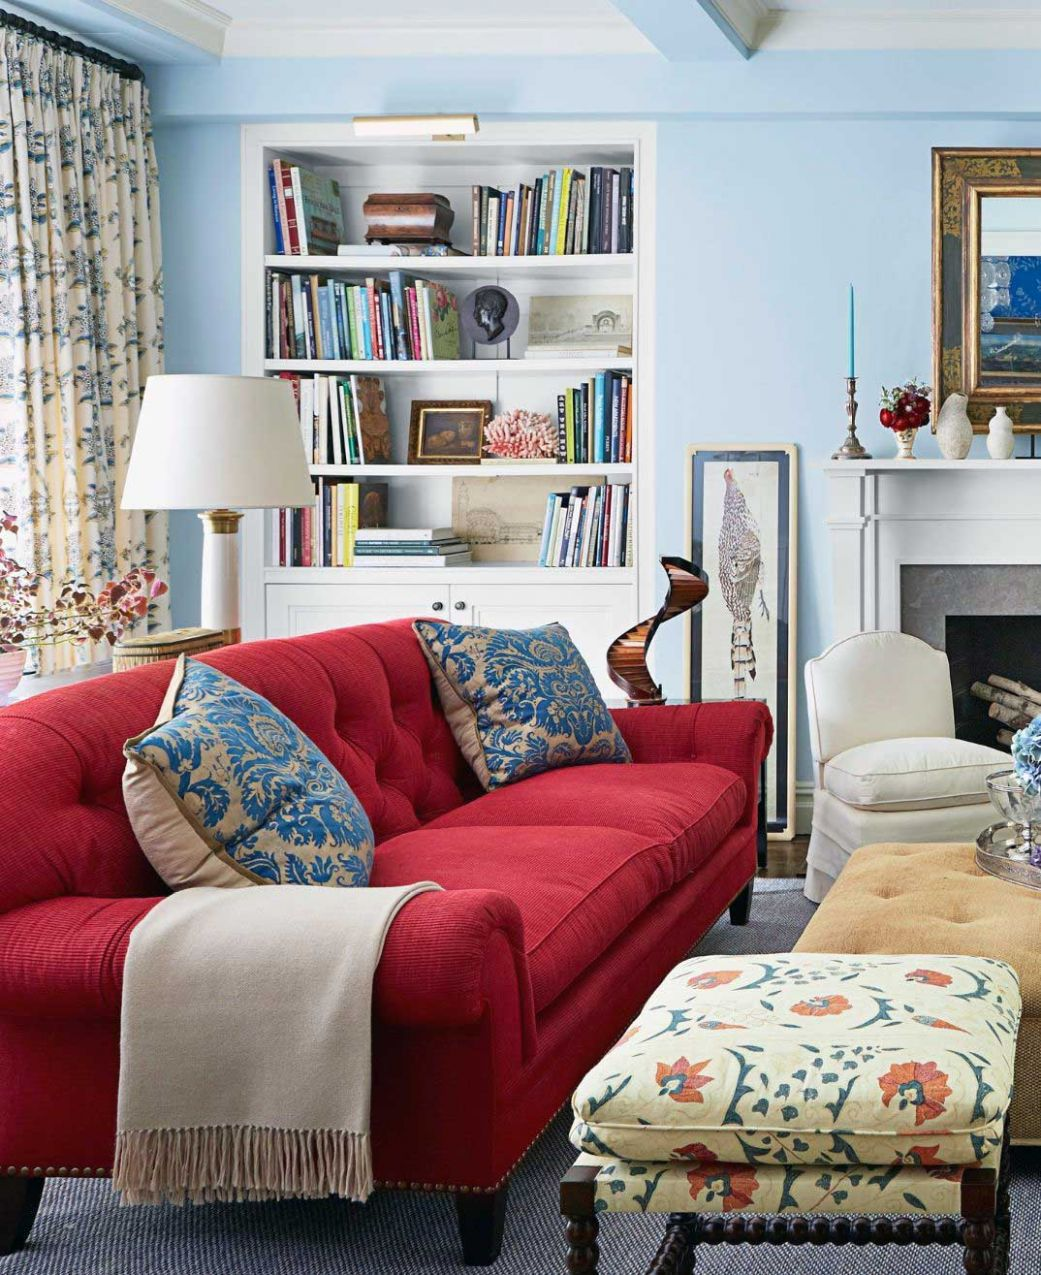 10 Luxury & Proper Red Sofa for Living Room Ideas